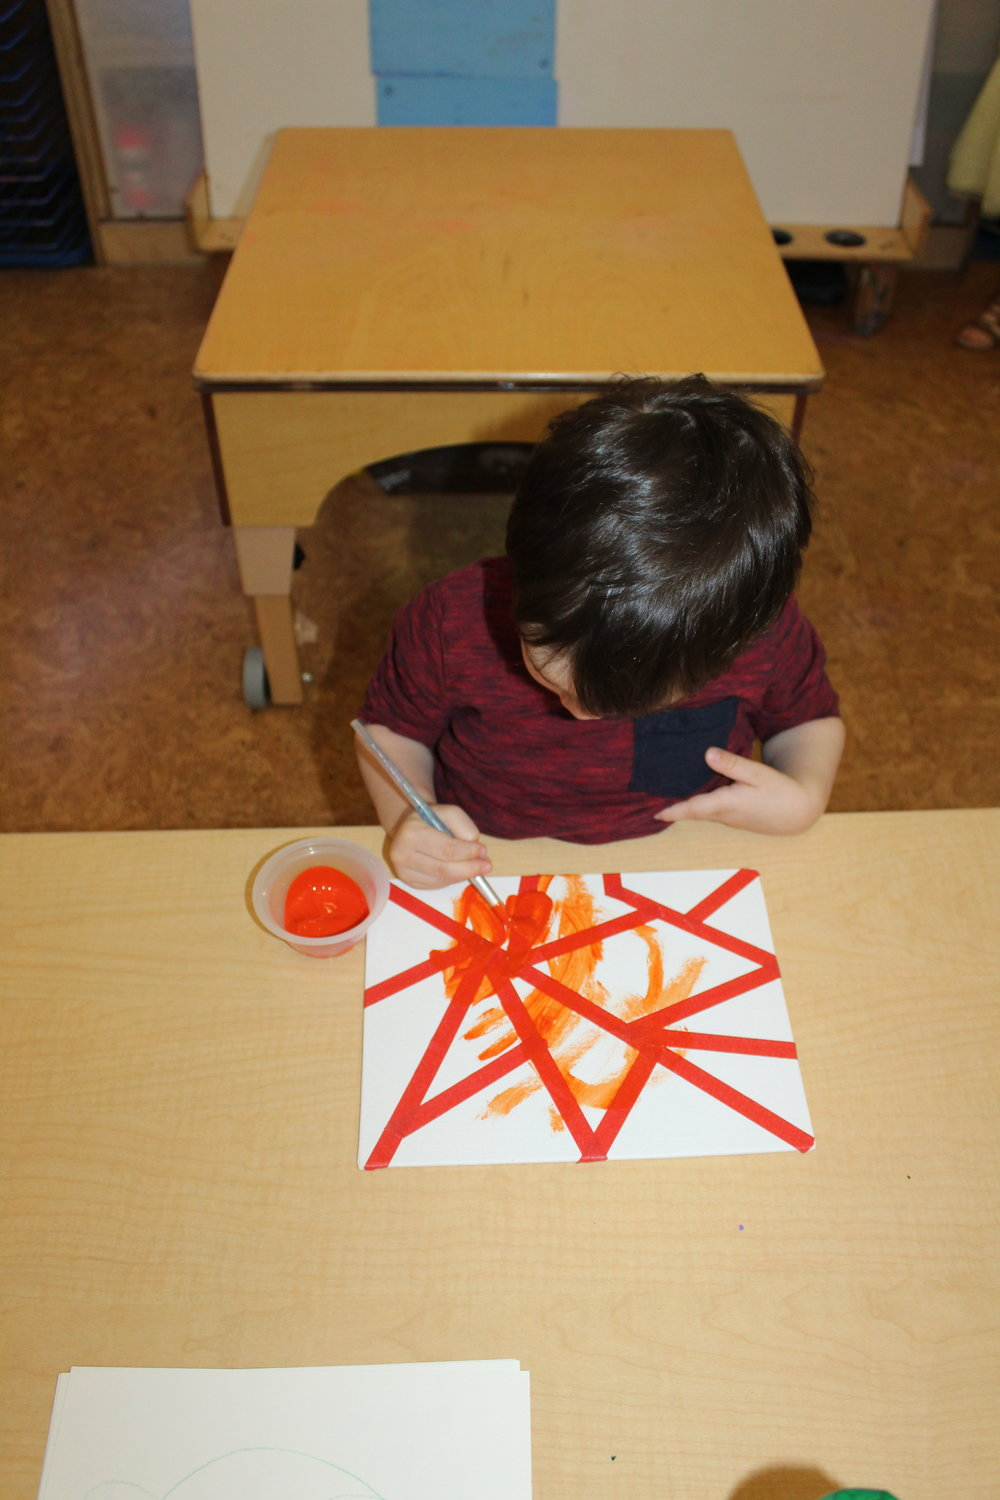 Using green, yellow, and orange hues, tape, and a rectangle shape canvas will make an art piece intriguing. The children appeared interested and amazed, as they observed the abstract design that was created by using different tools and materials.